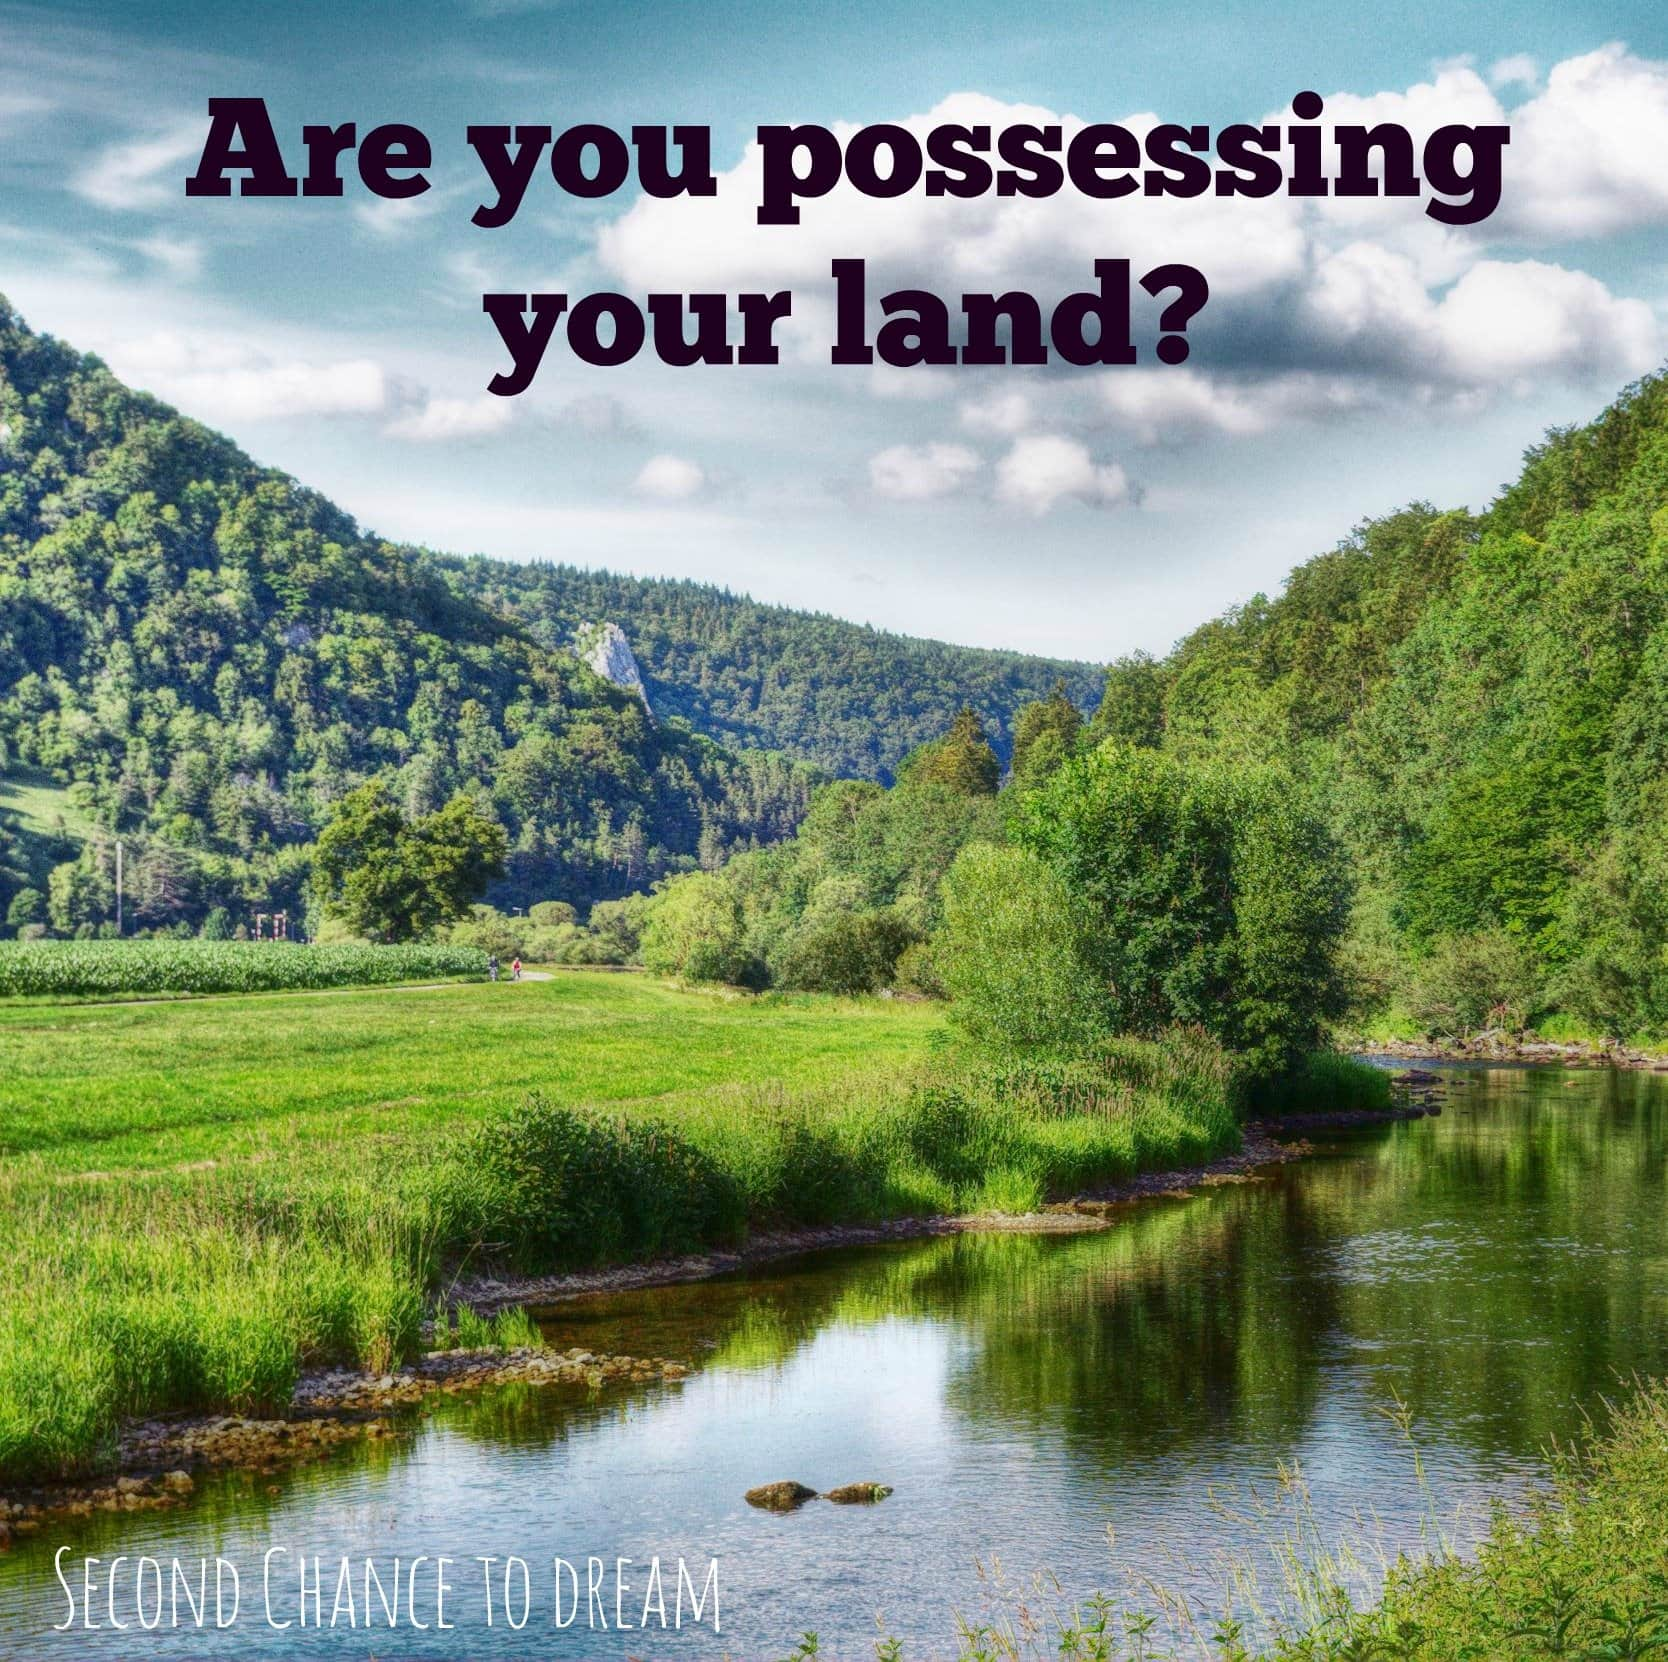 Second Chance to Dream: Are you possessing the land? #lifelesson #Christianliving